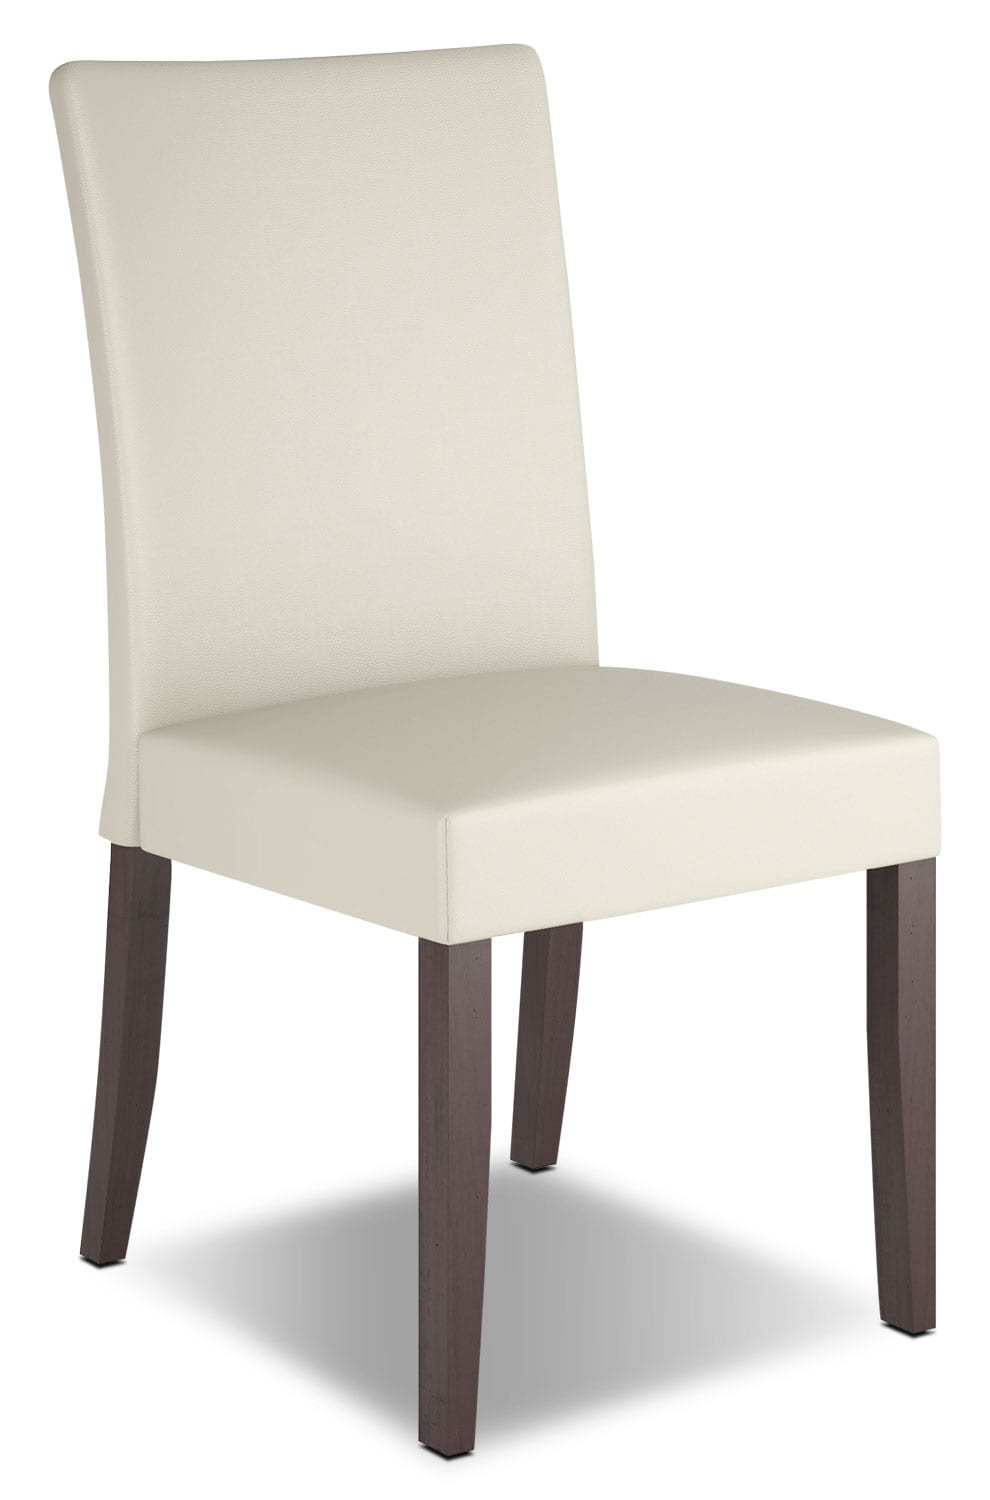 Dining Room Furniture - Atwood Faux Leather Dining Chair - Cream